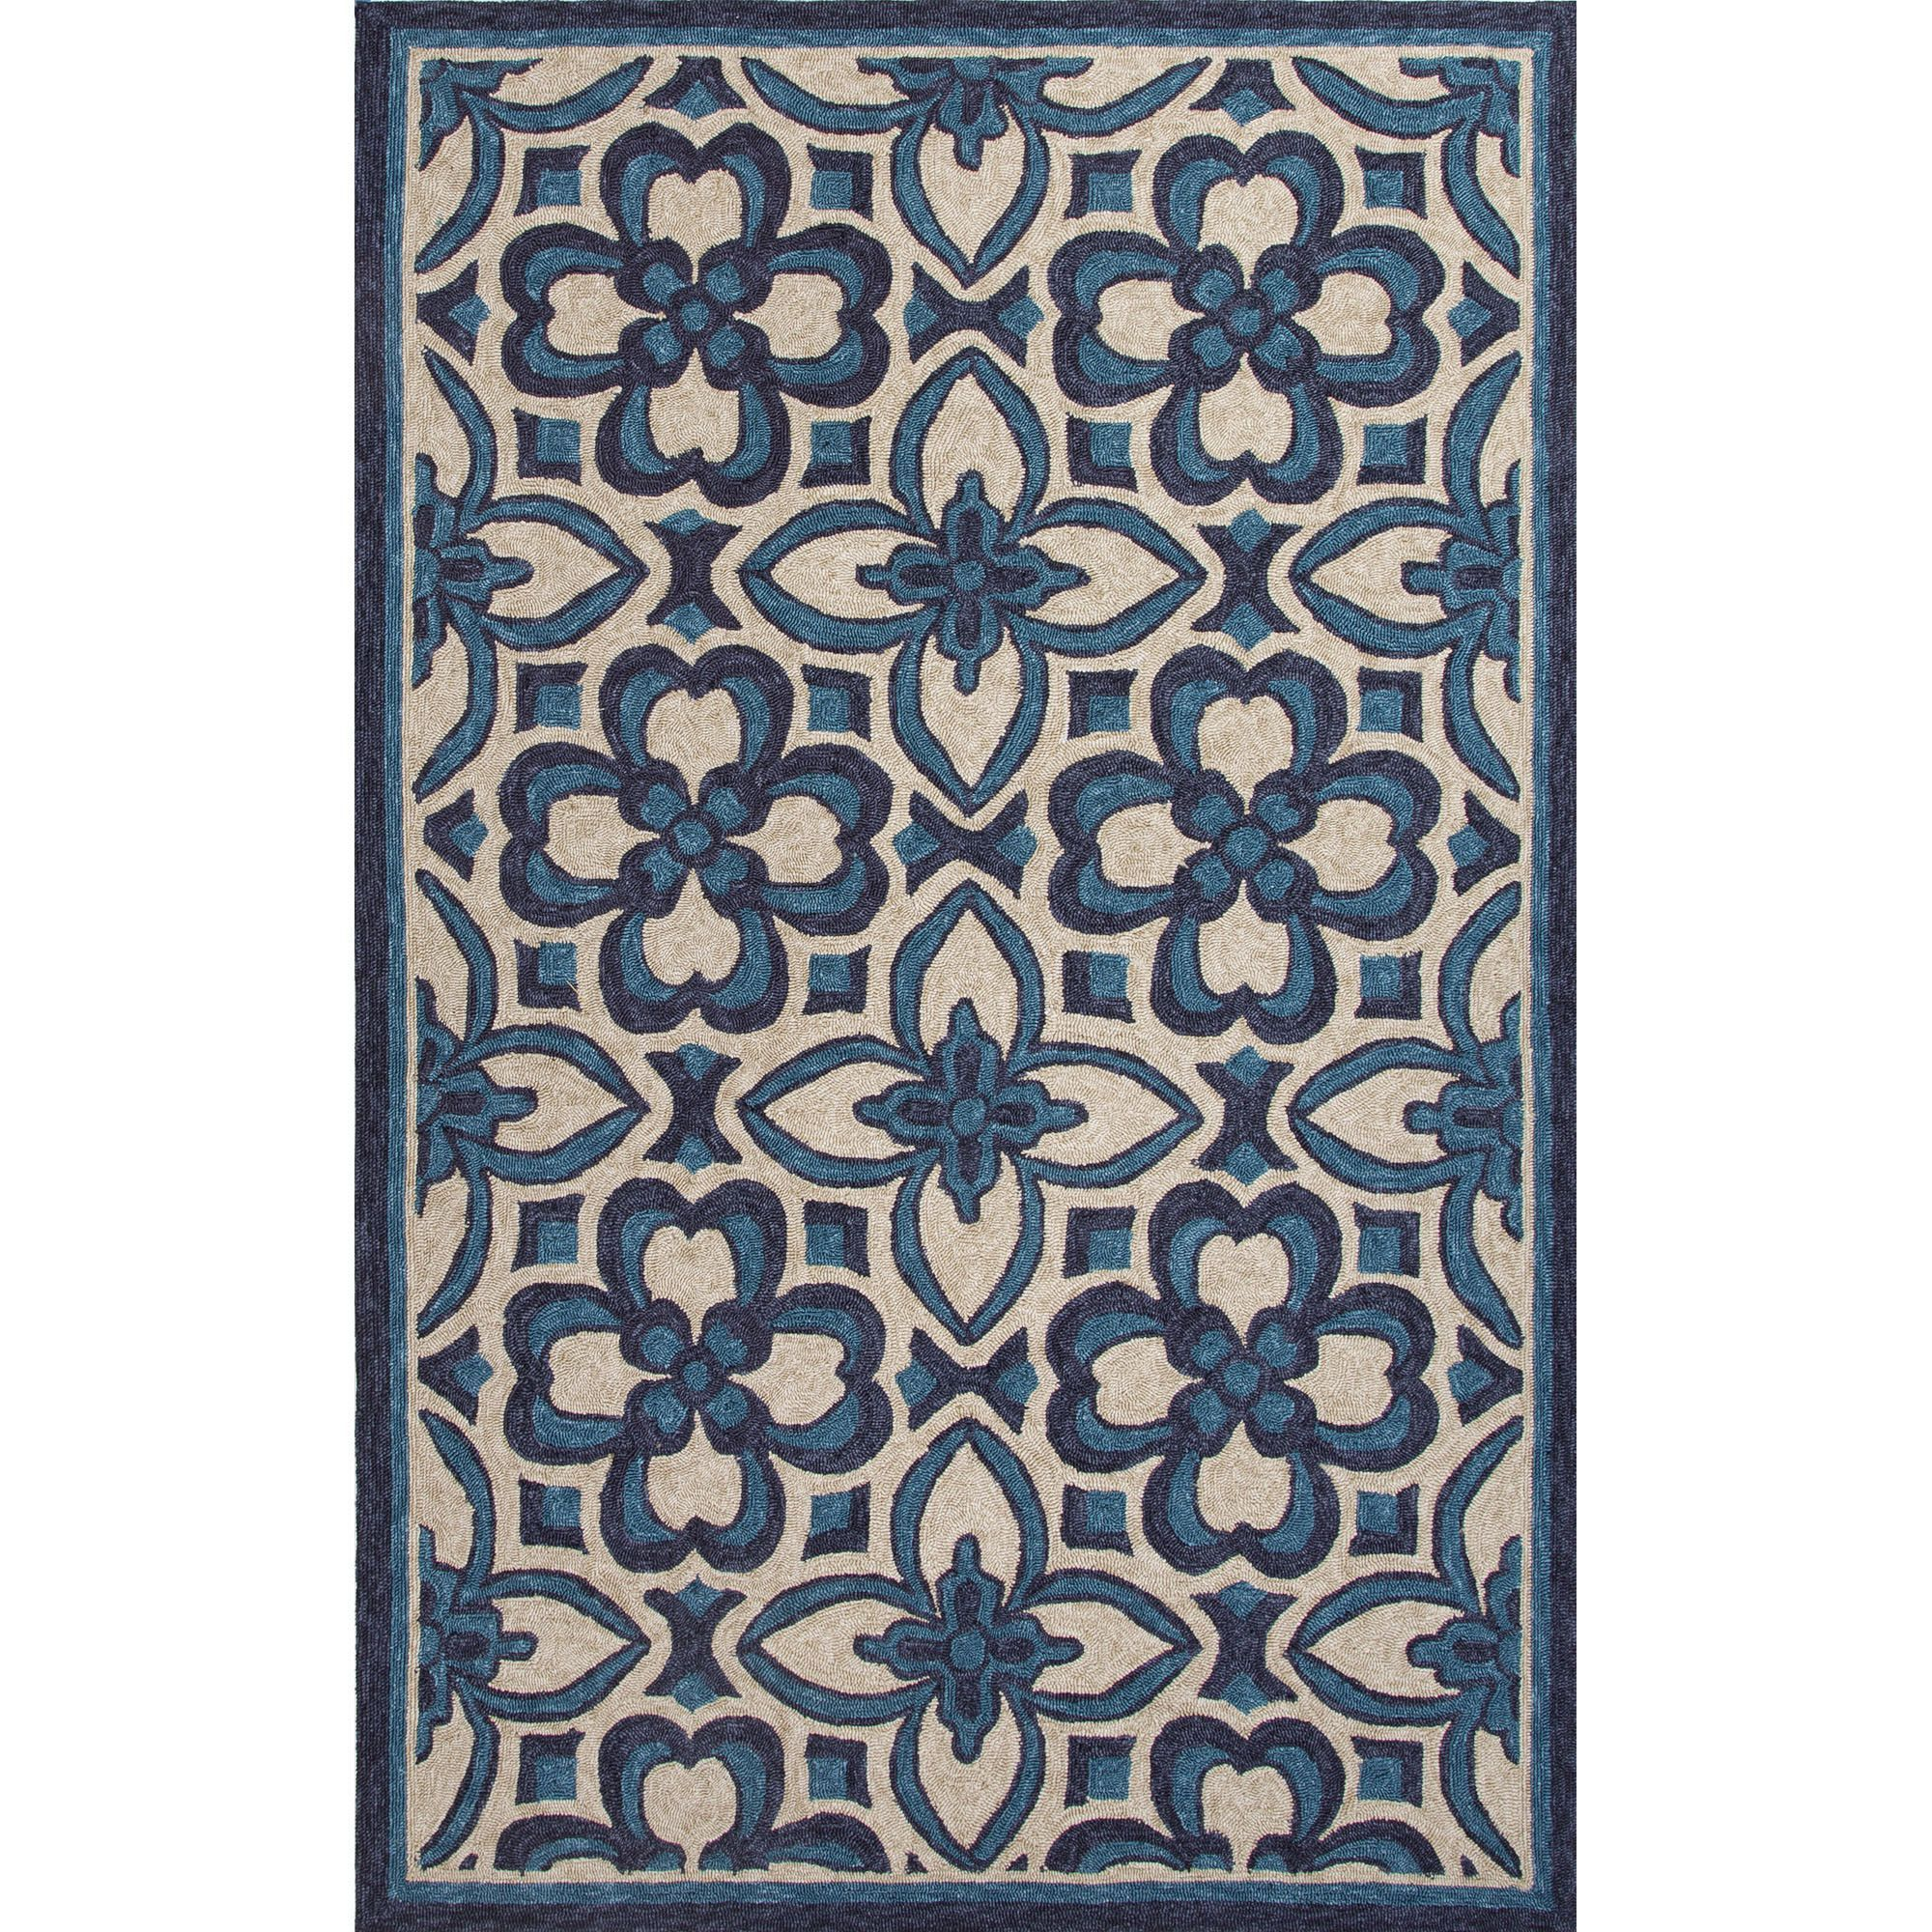 Jaipur Rugs IndoorOutdoor Moroccan Pattern Blue/Ivory Polyester Area Rug CAT11 (Rectangle)